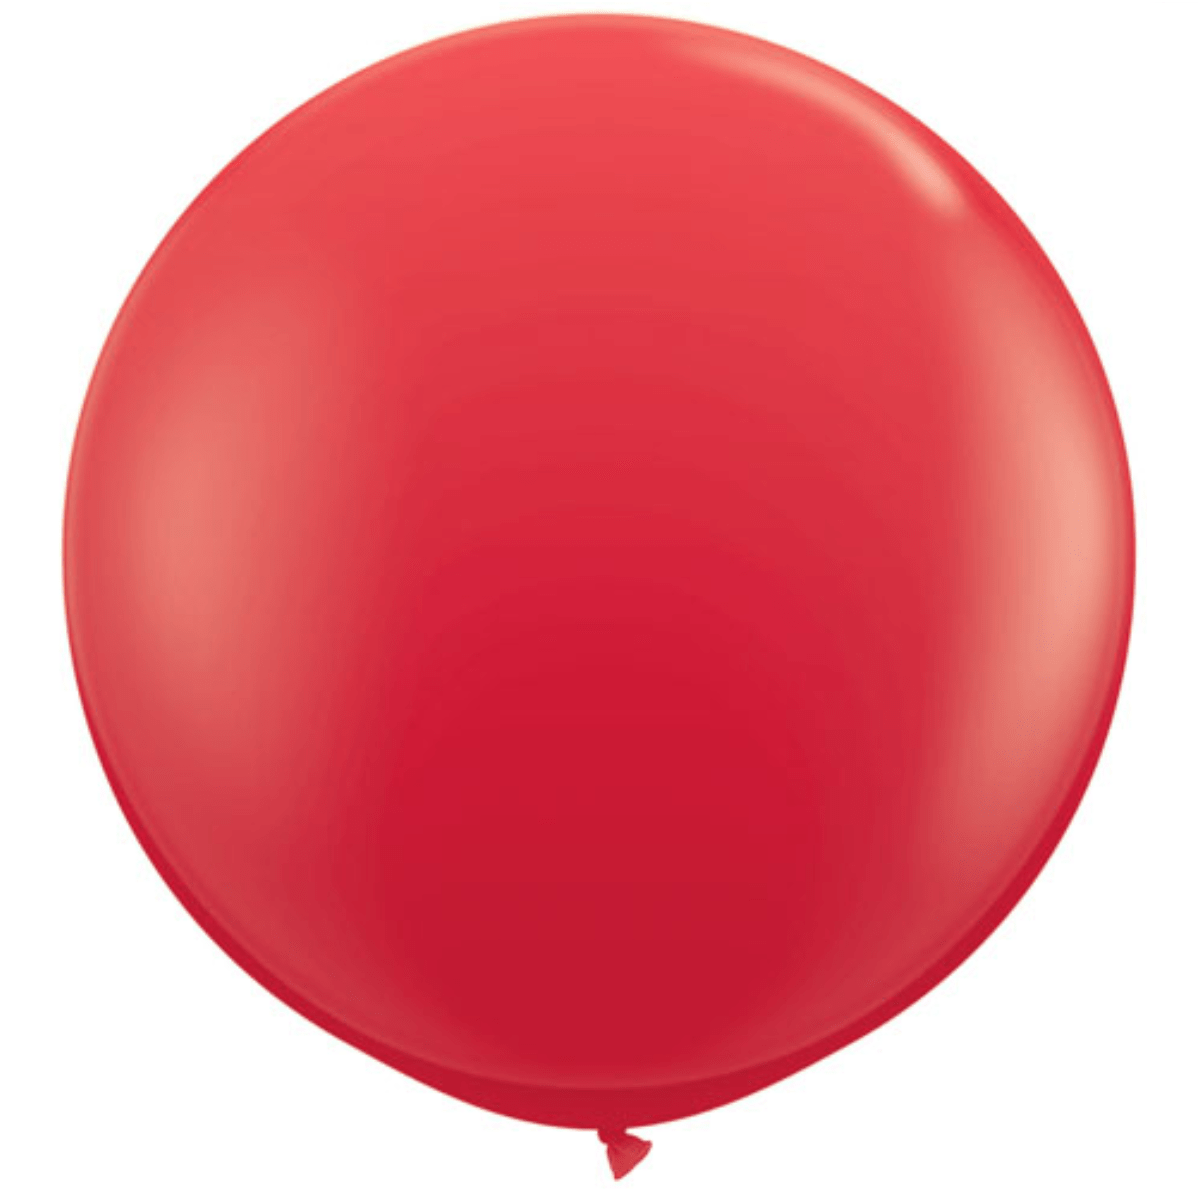 3ft red Balloon | 36 Inch Red Round Qualatex Balloon UK